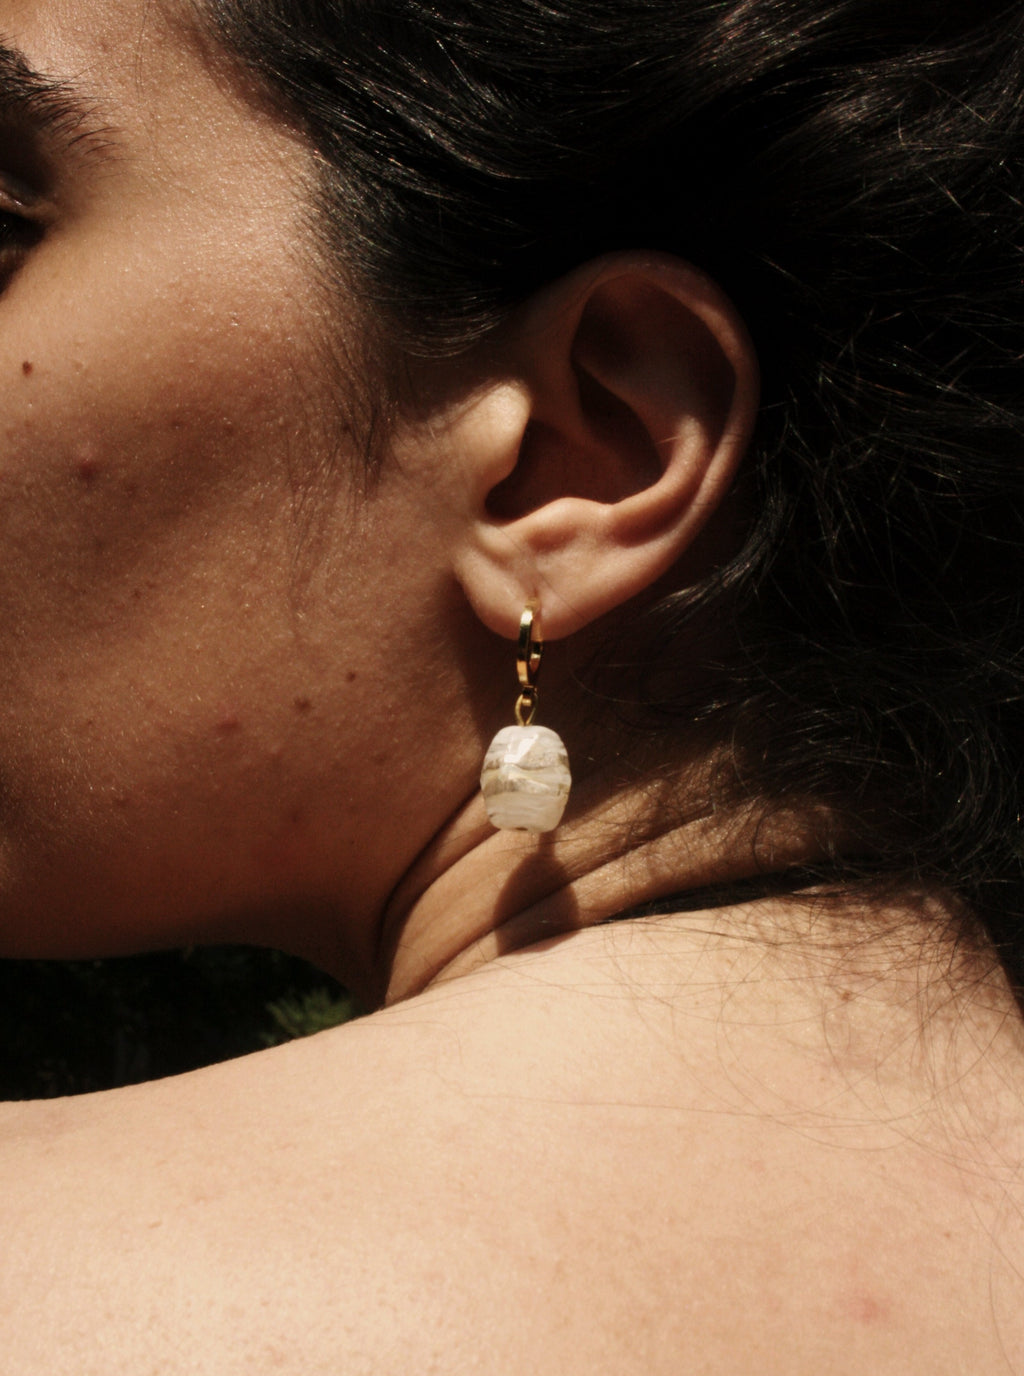 Handmade earrings with gold-plated brass half hoops and gilded molten glass beads